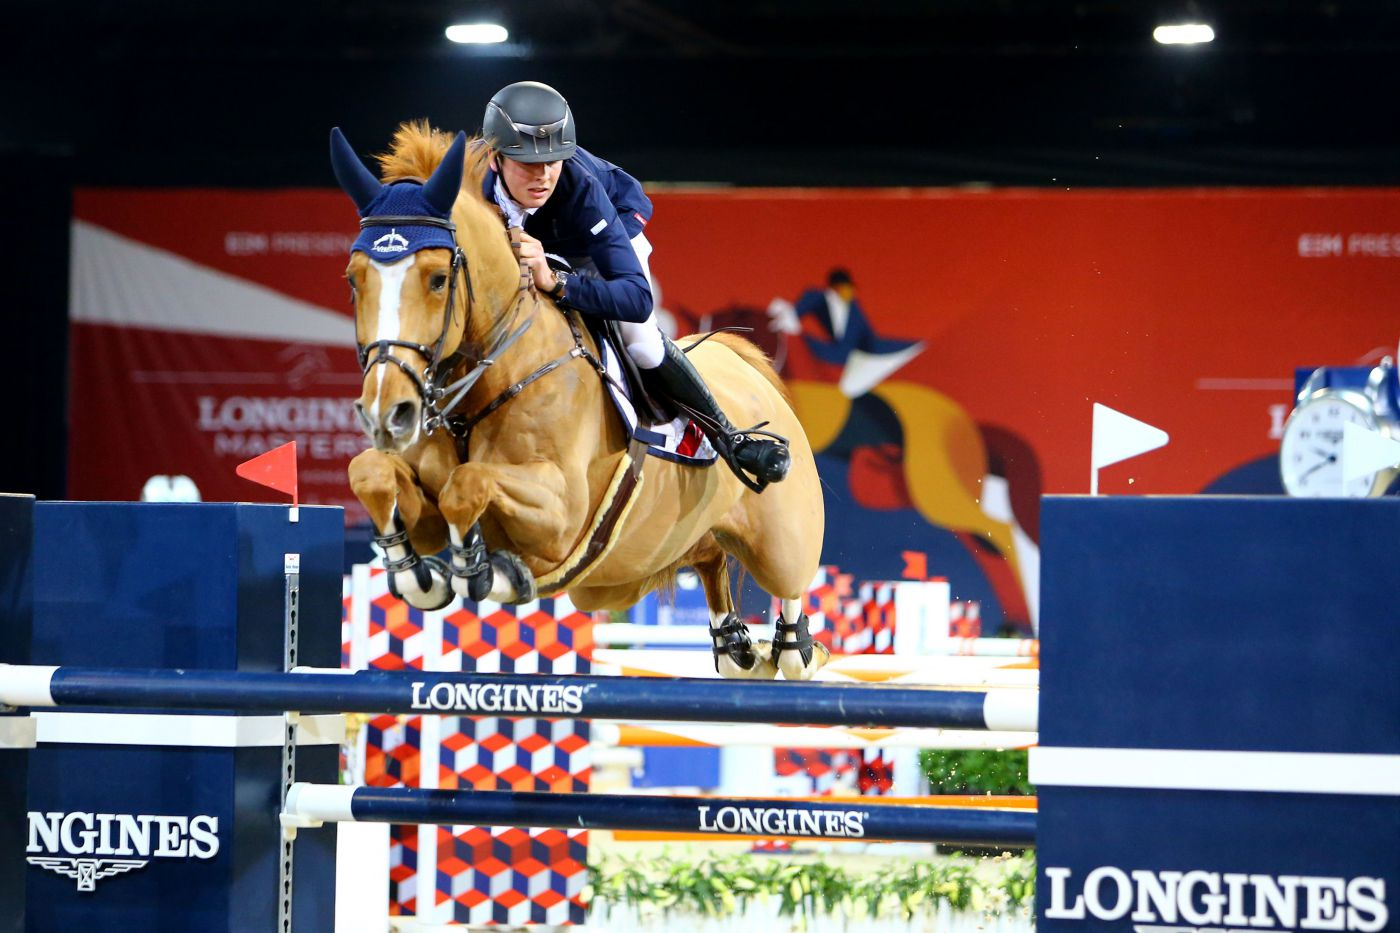 Longines Show Jumping Event: Thrilling emotions during the Longines Speed Challenge, which saw the victory of Daniel Deusser 1